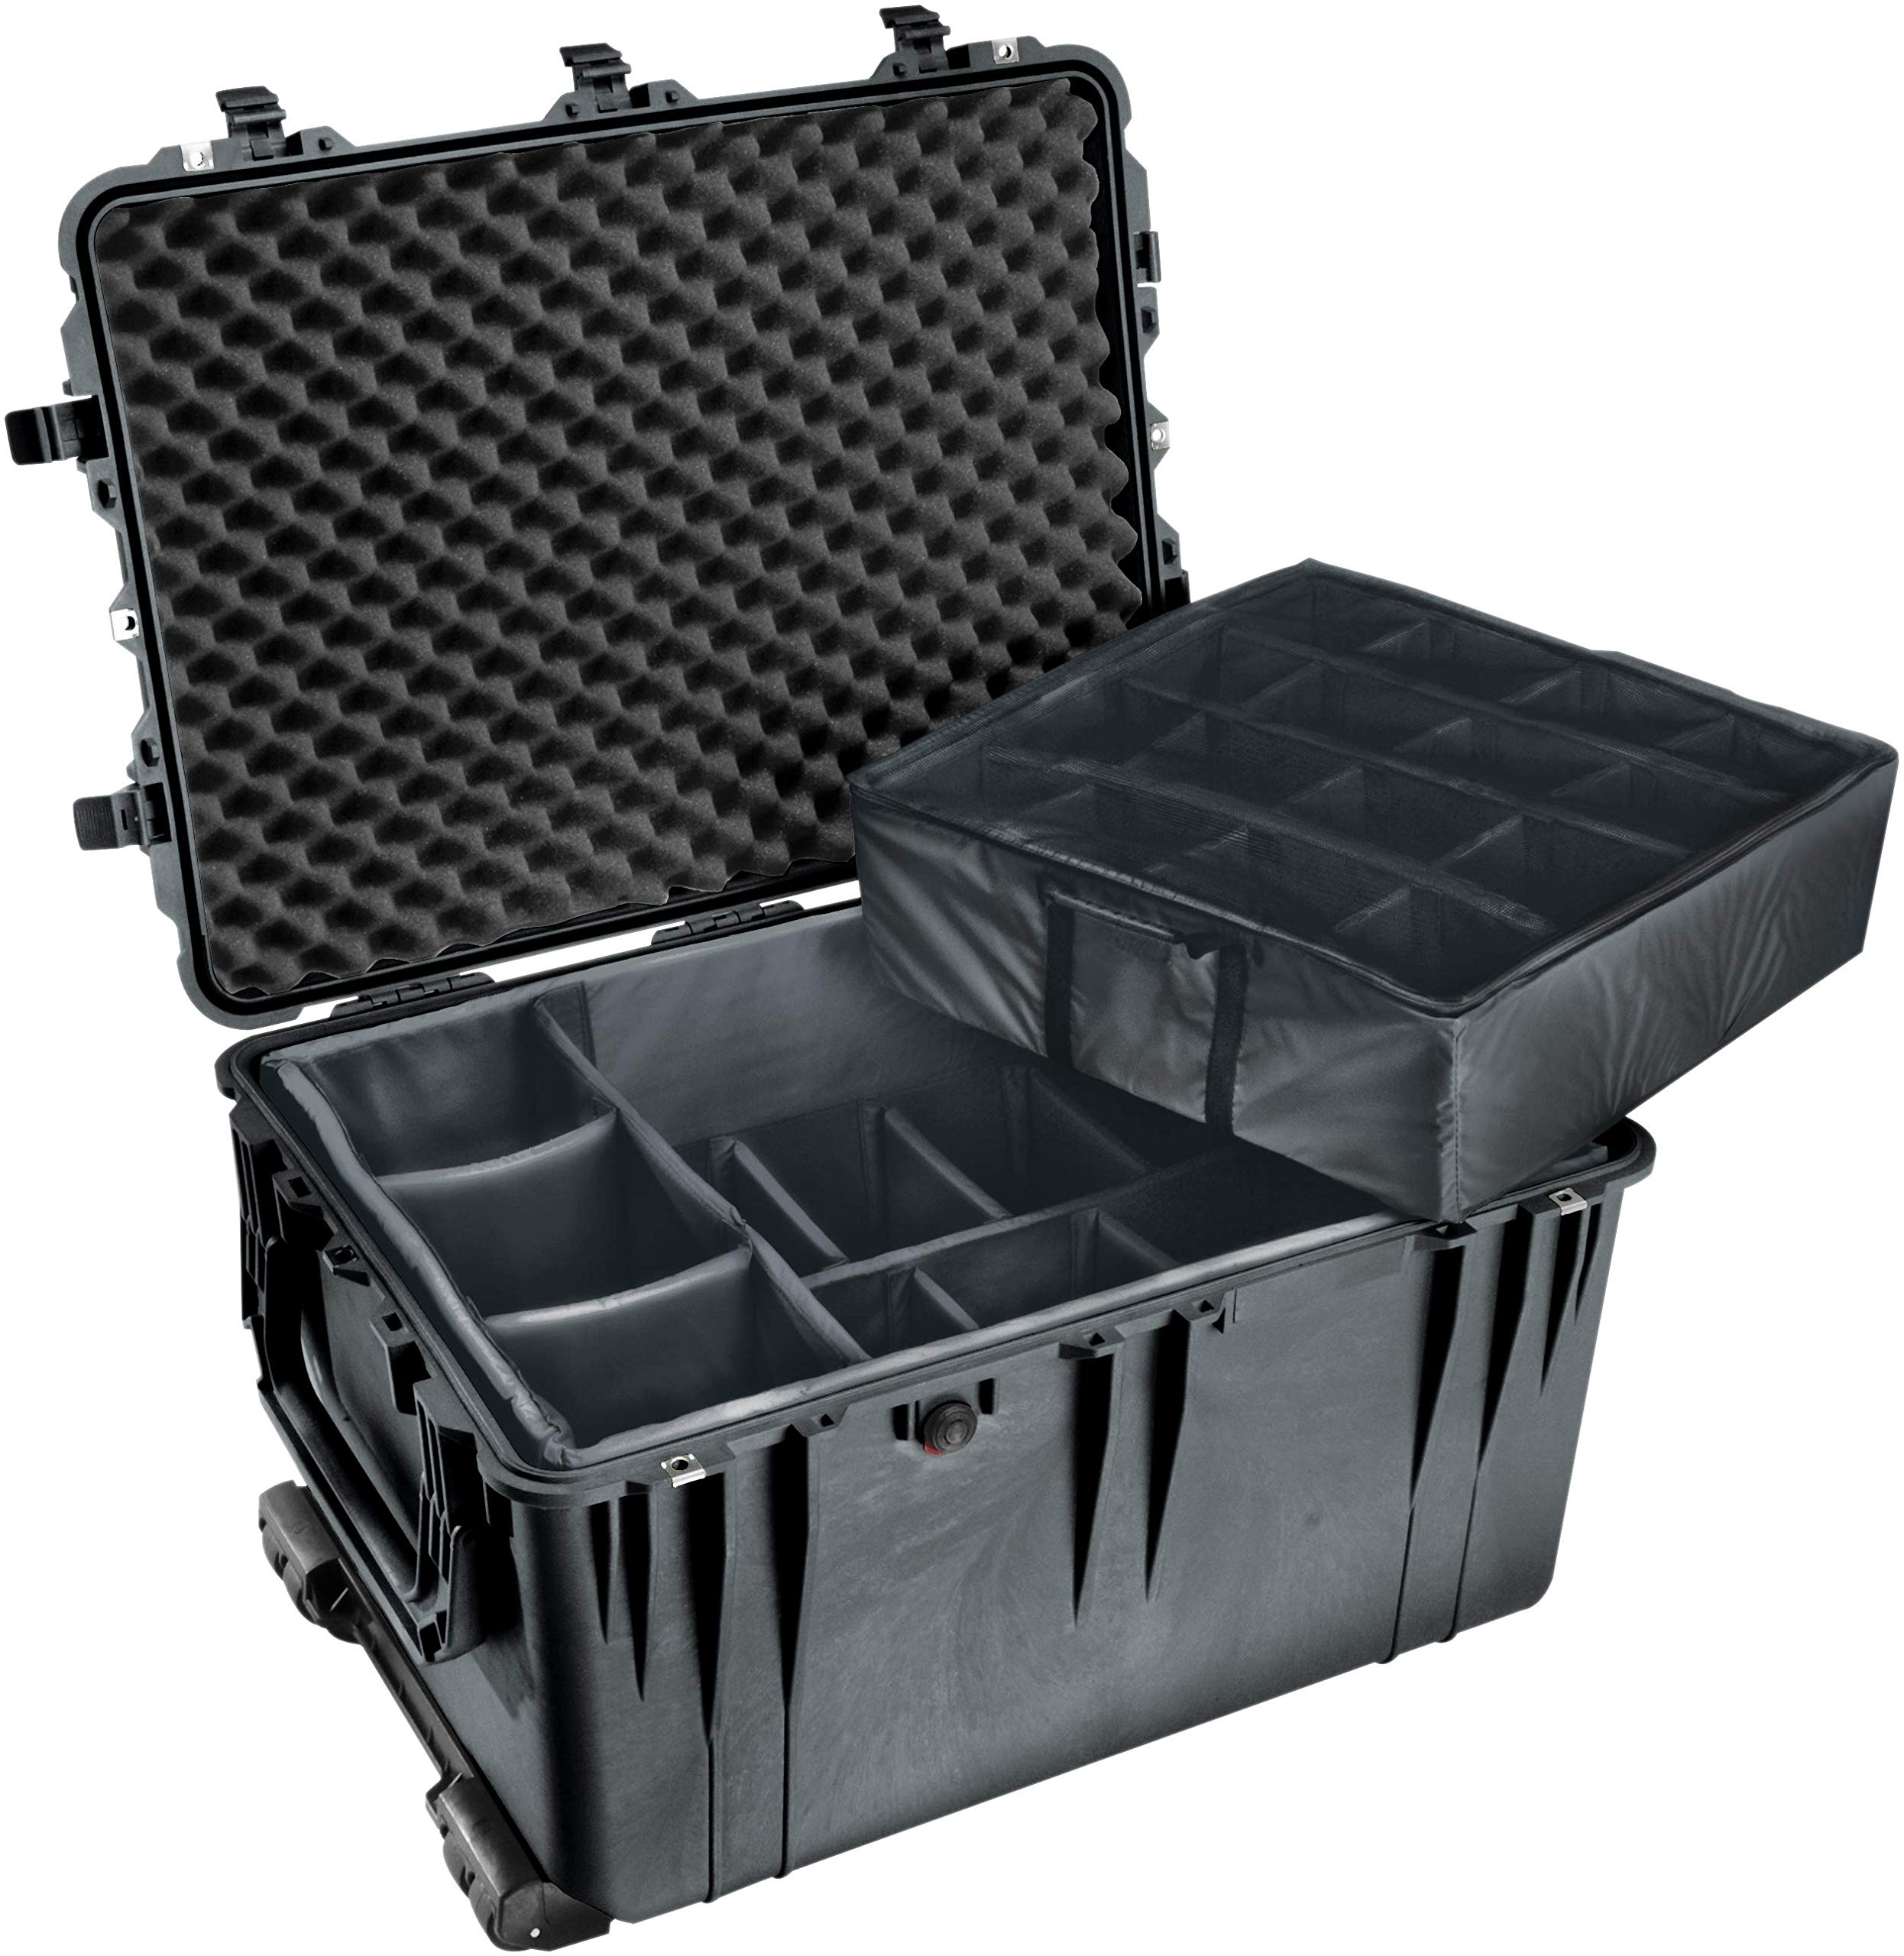 Pelican 1660 Case with Padded Dividers (Black) by Pelican (Image #2)